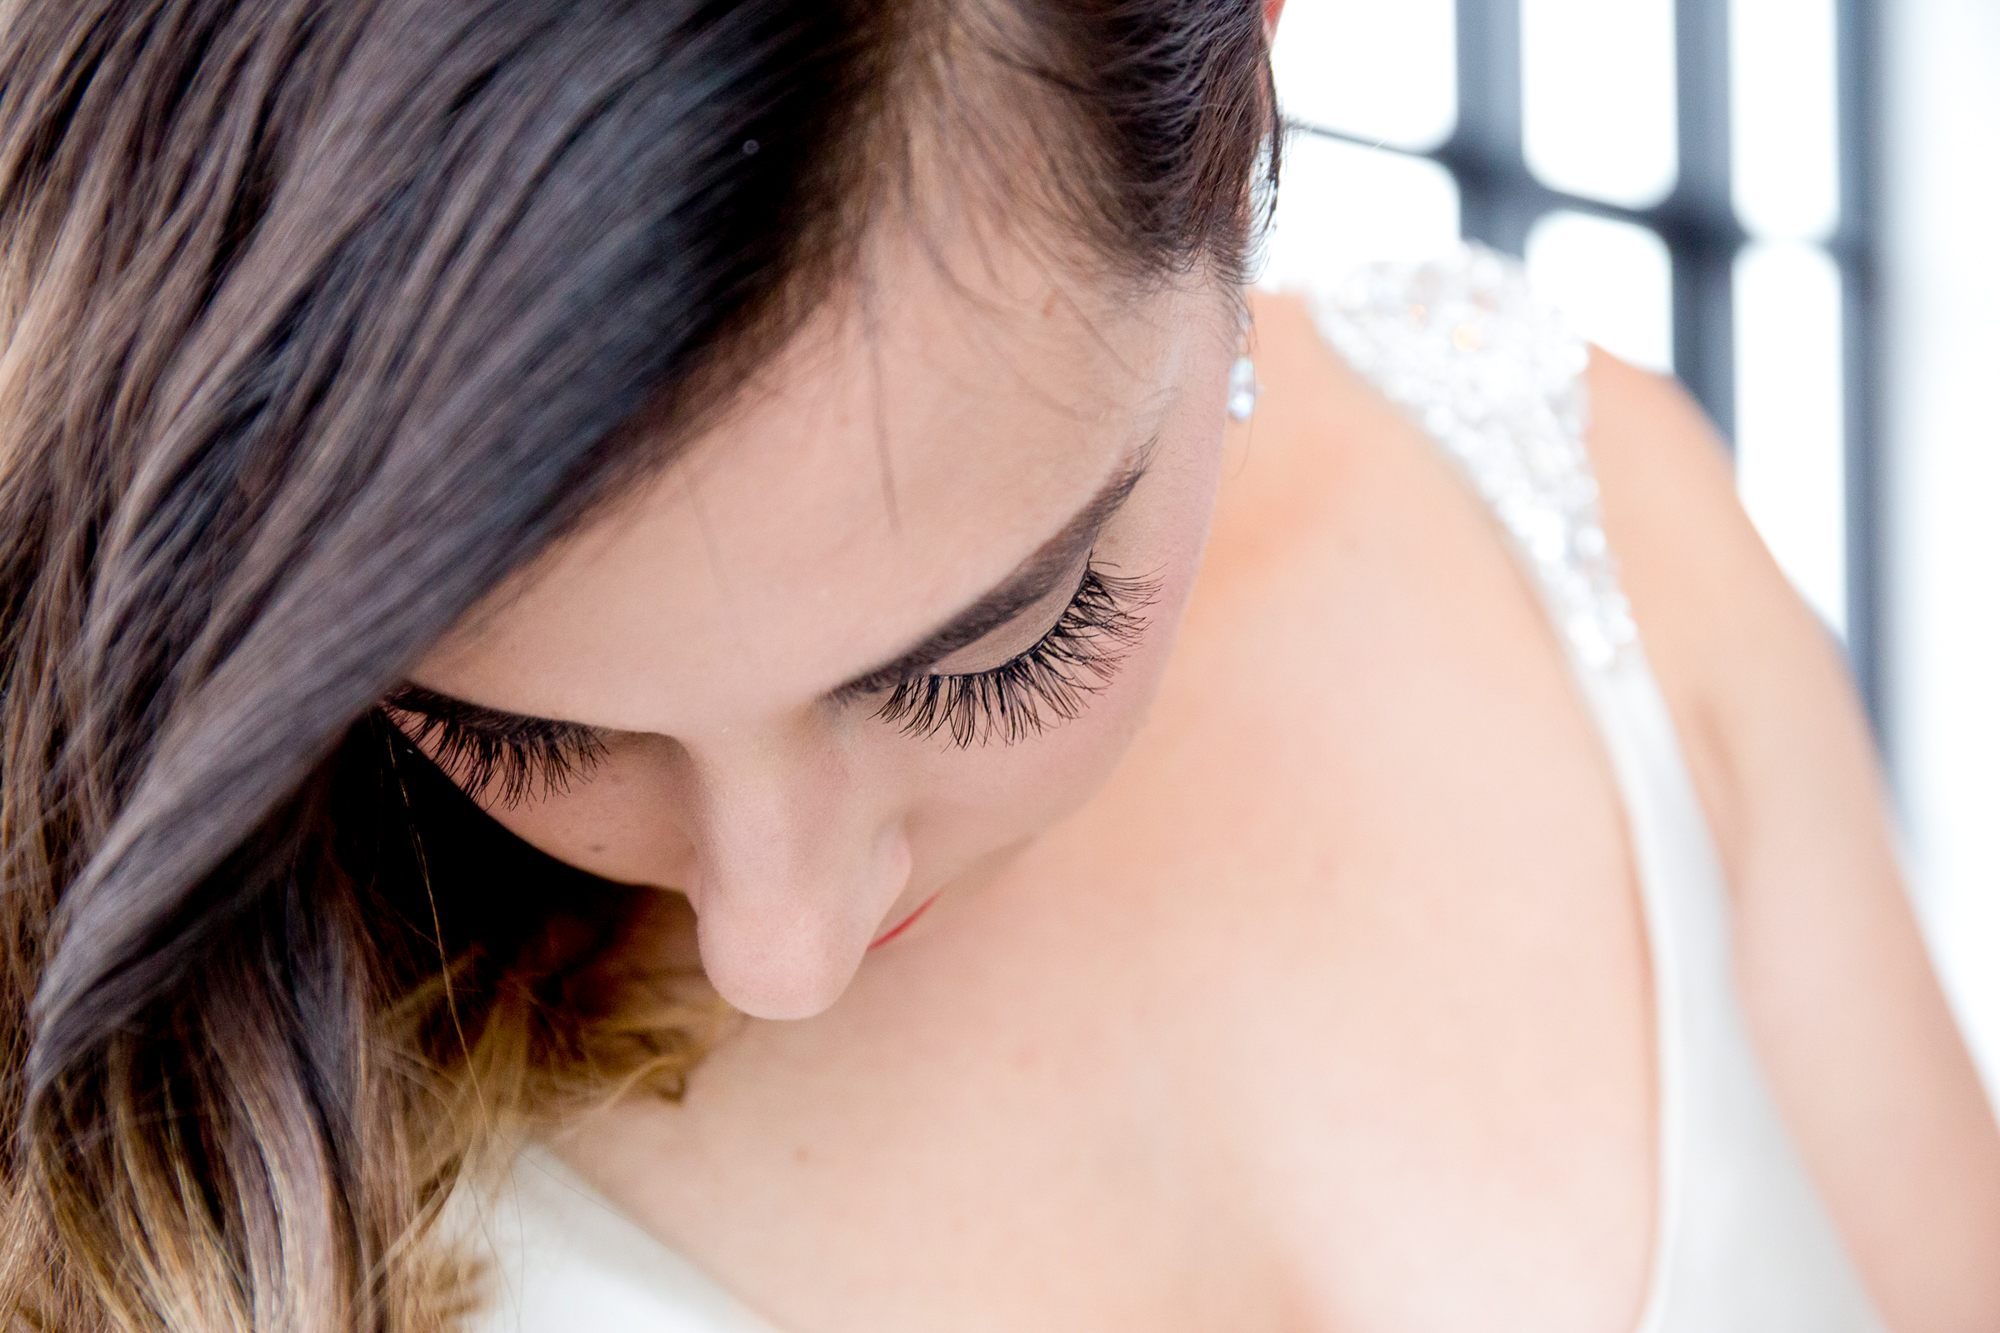 008_CarlyGaebe_SteadfastStudio_WeddingPhotography_NewYorkCity_Brooklyn_WytheHotel_Retro_Bride_Eyelashes.jpg